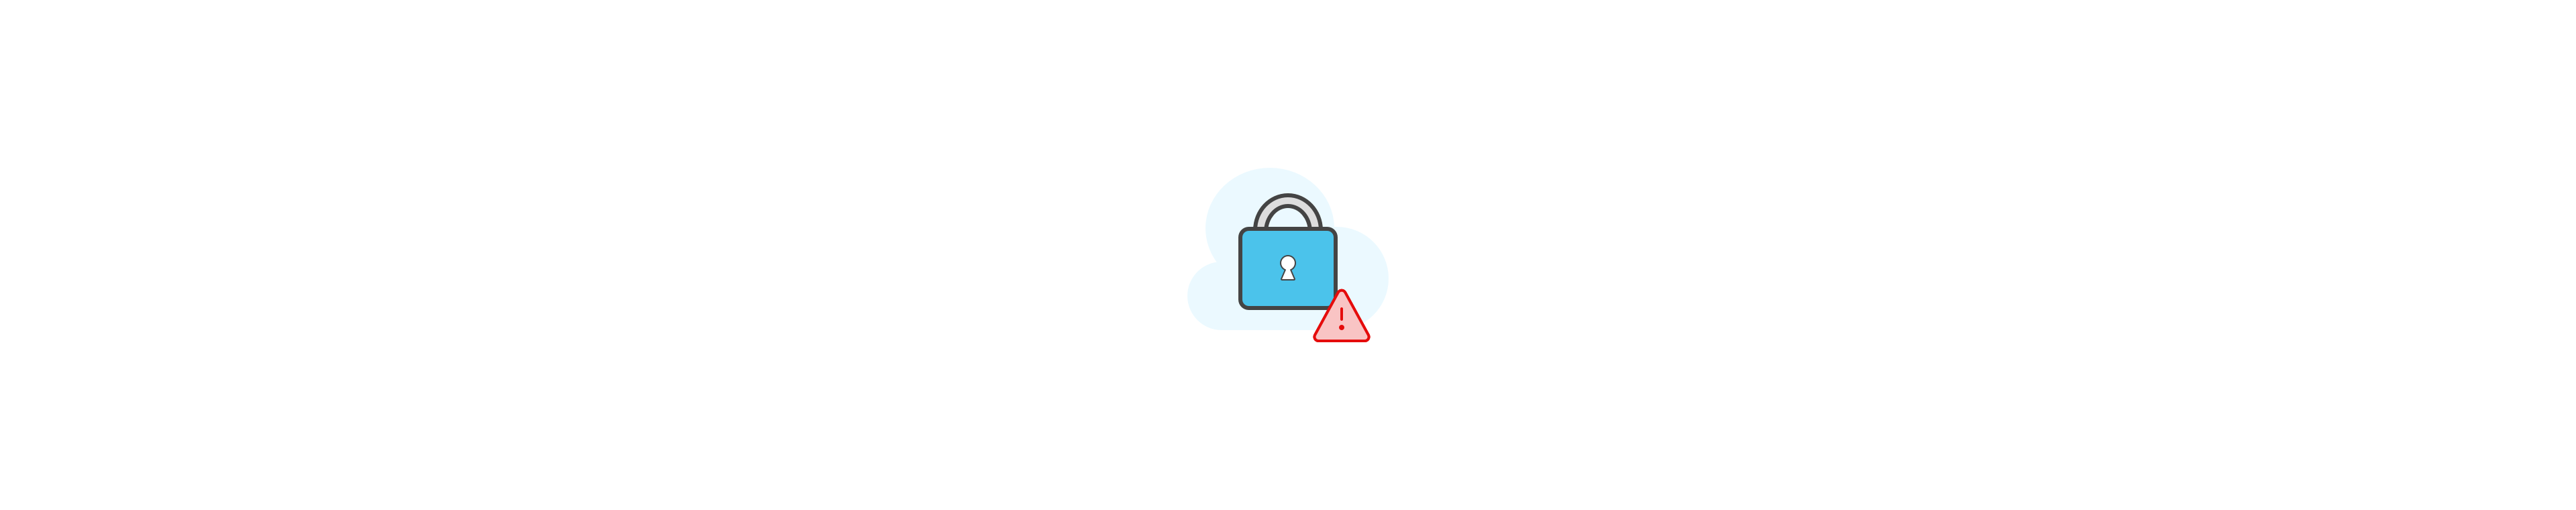 Cloud Storage Security: How to Secure Your Data in the Cloud?